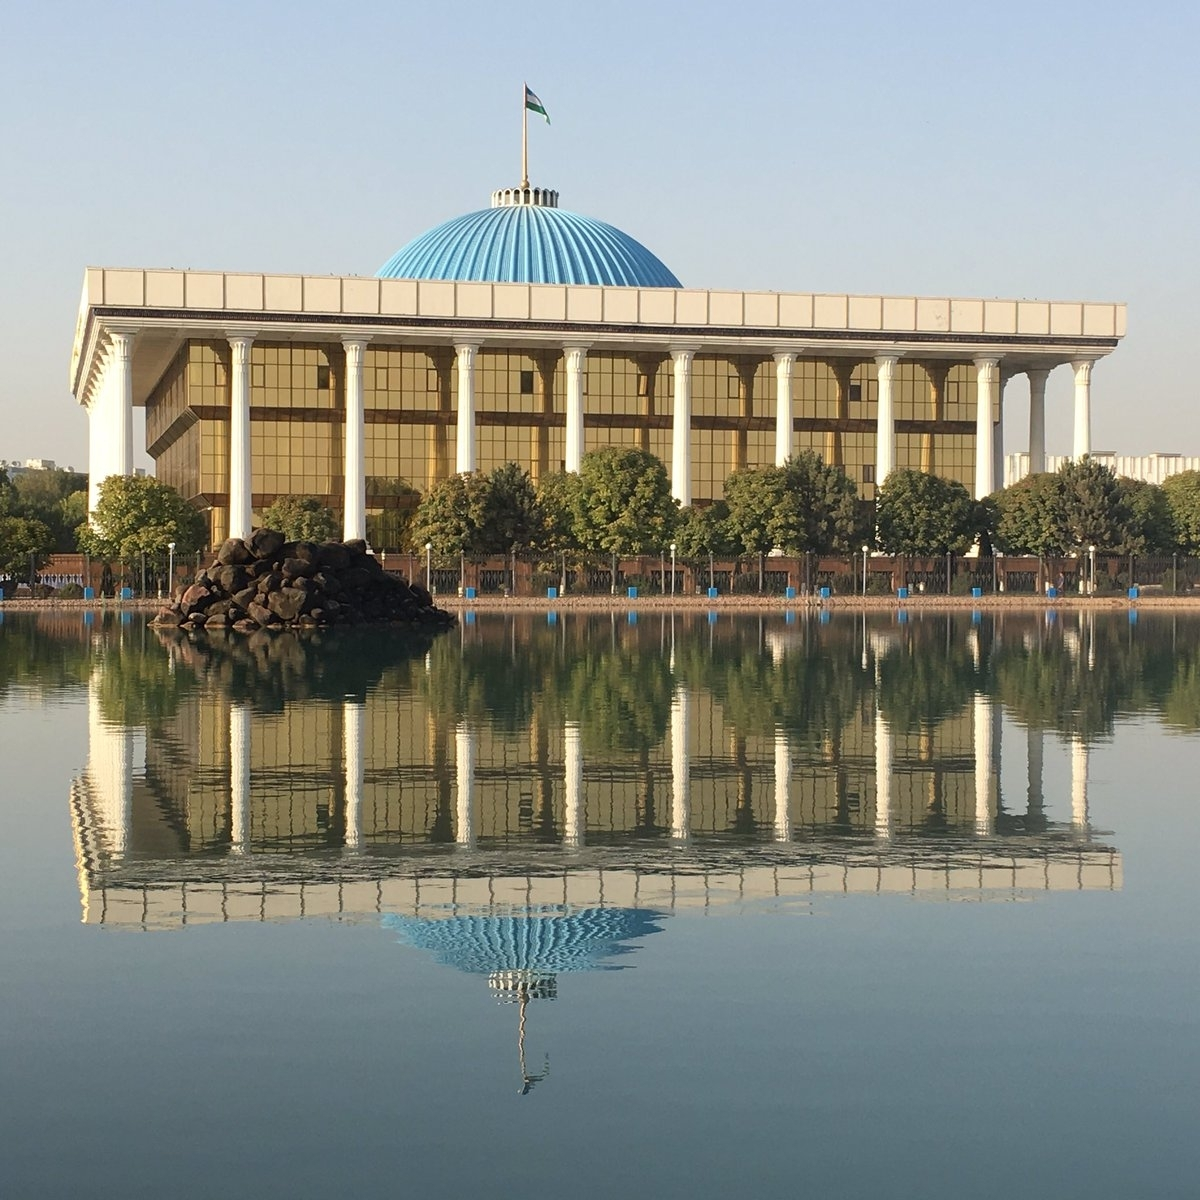 Uzbekistan's parliament, which is known as the Oliy Majlis. (Photo: Eurasianet)